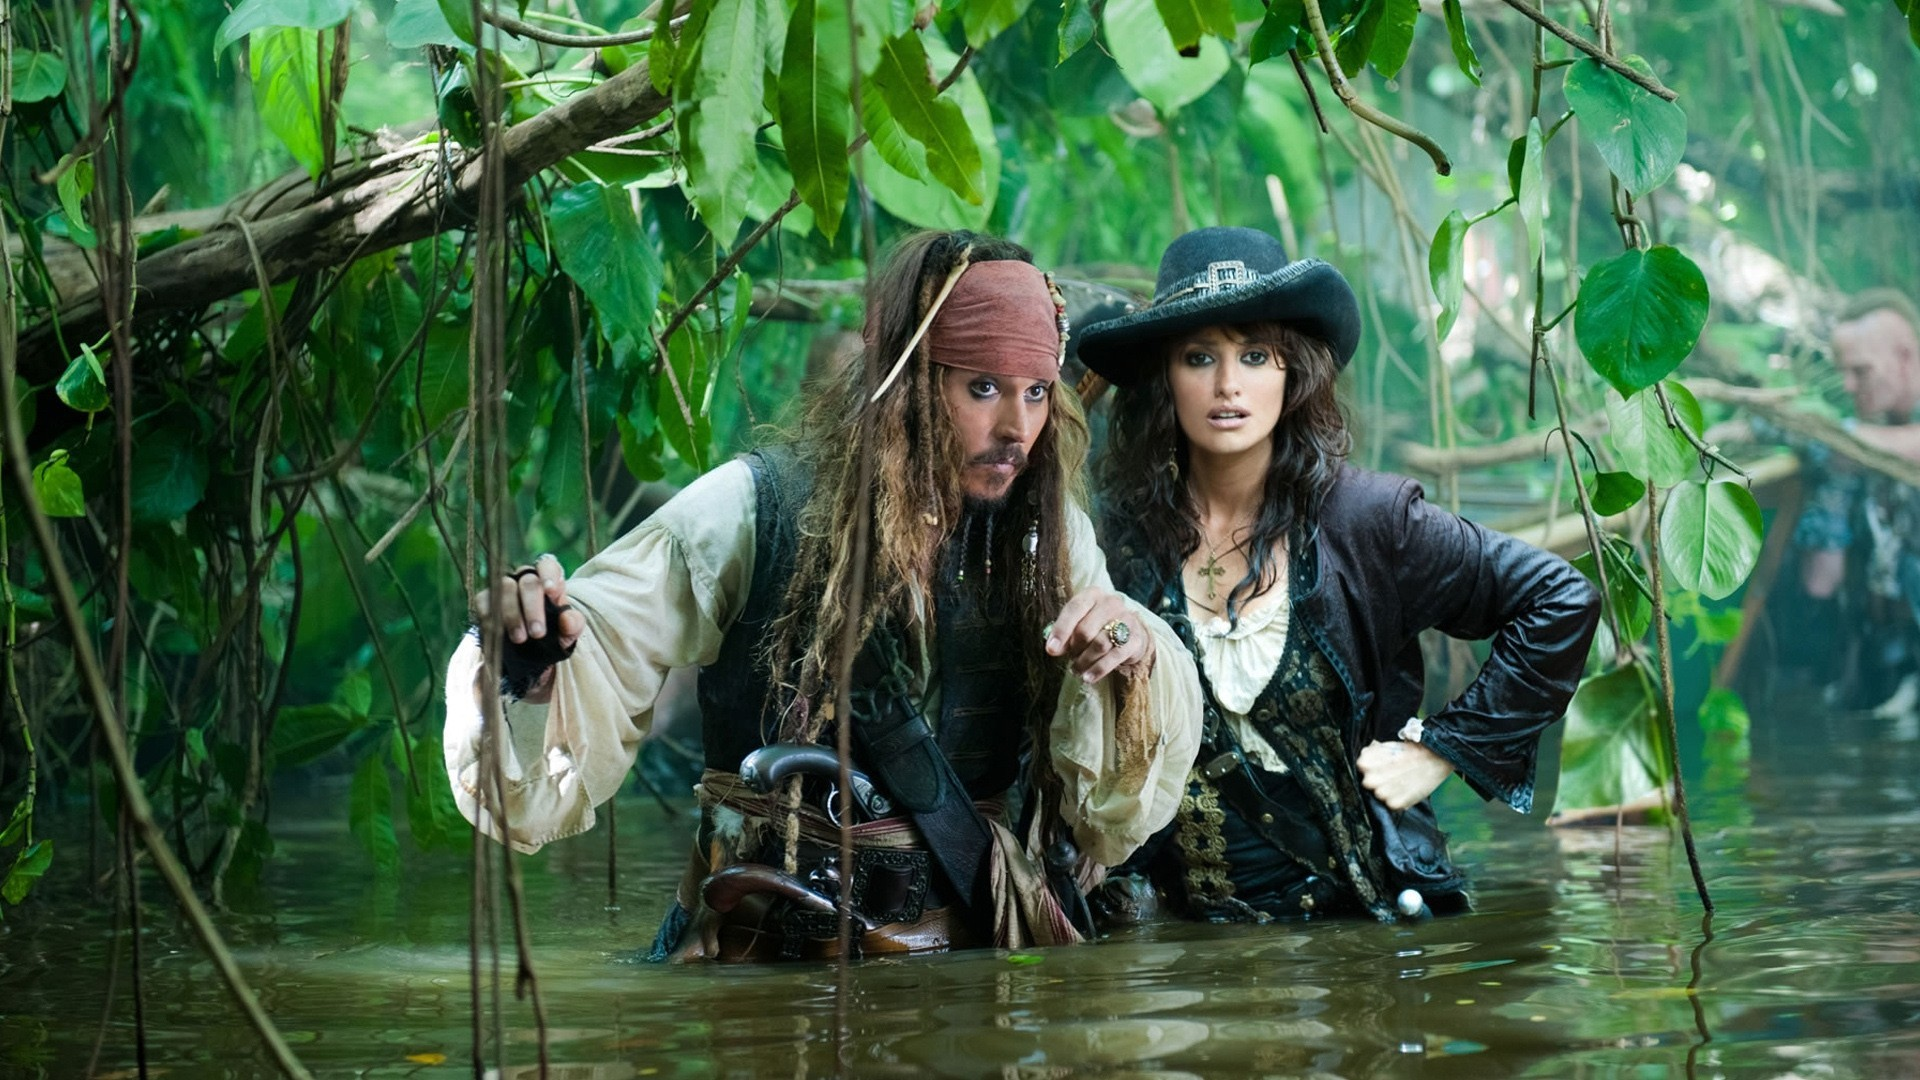 Movies penelope cruz Pirates HD Wallpaper